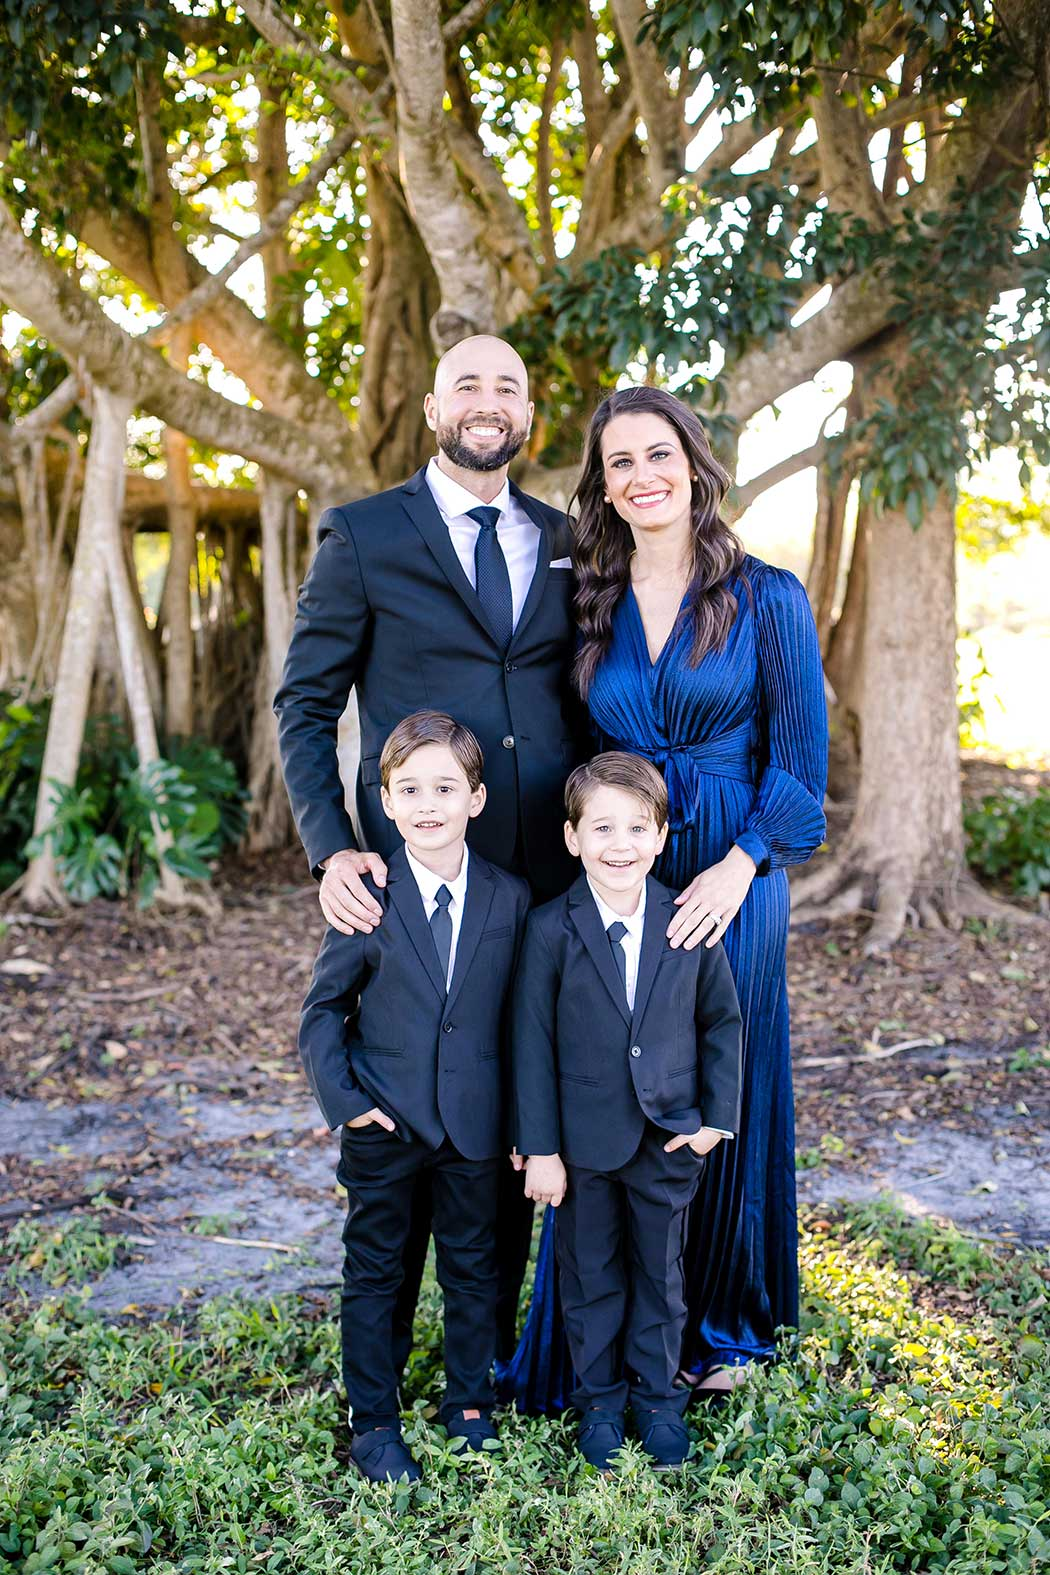 formal family photography in a park | park photography session with family 4 | twin boys photography | family photographer robbins preserve | fort lauderdale family photography session